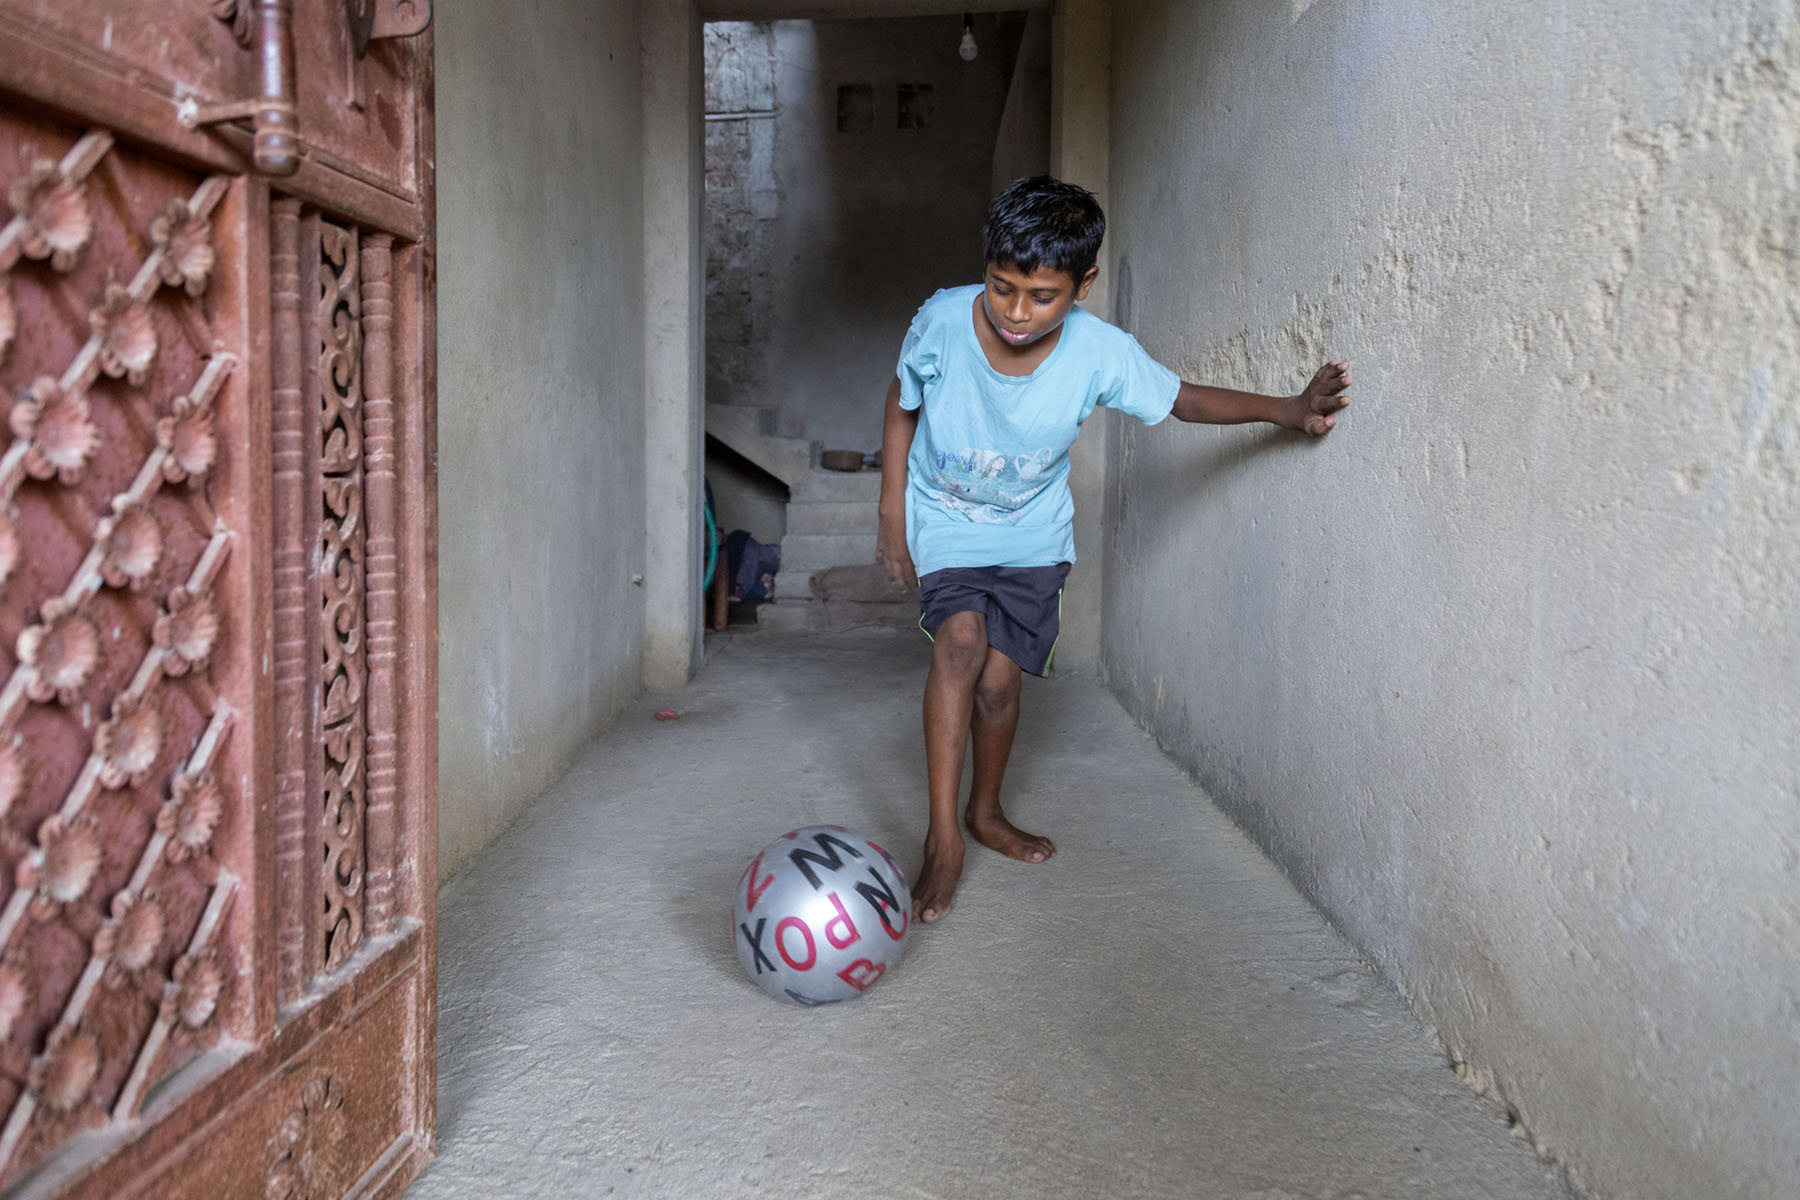 Aman in light blue half-sleeved T-shirt and navy blue shorts is kicking a plastic ball in a corridor. The walls of the corridor have not been plastered and the floor is unfinished. The silvery-grey ball has capital letters of the alphabet on it, in red and black.